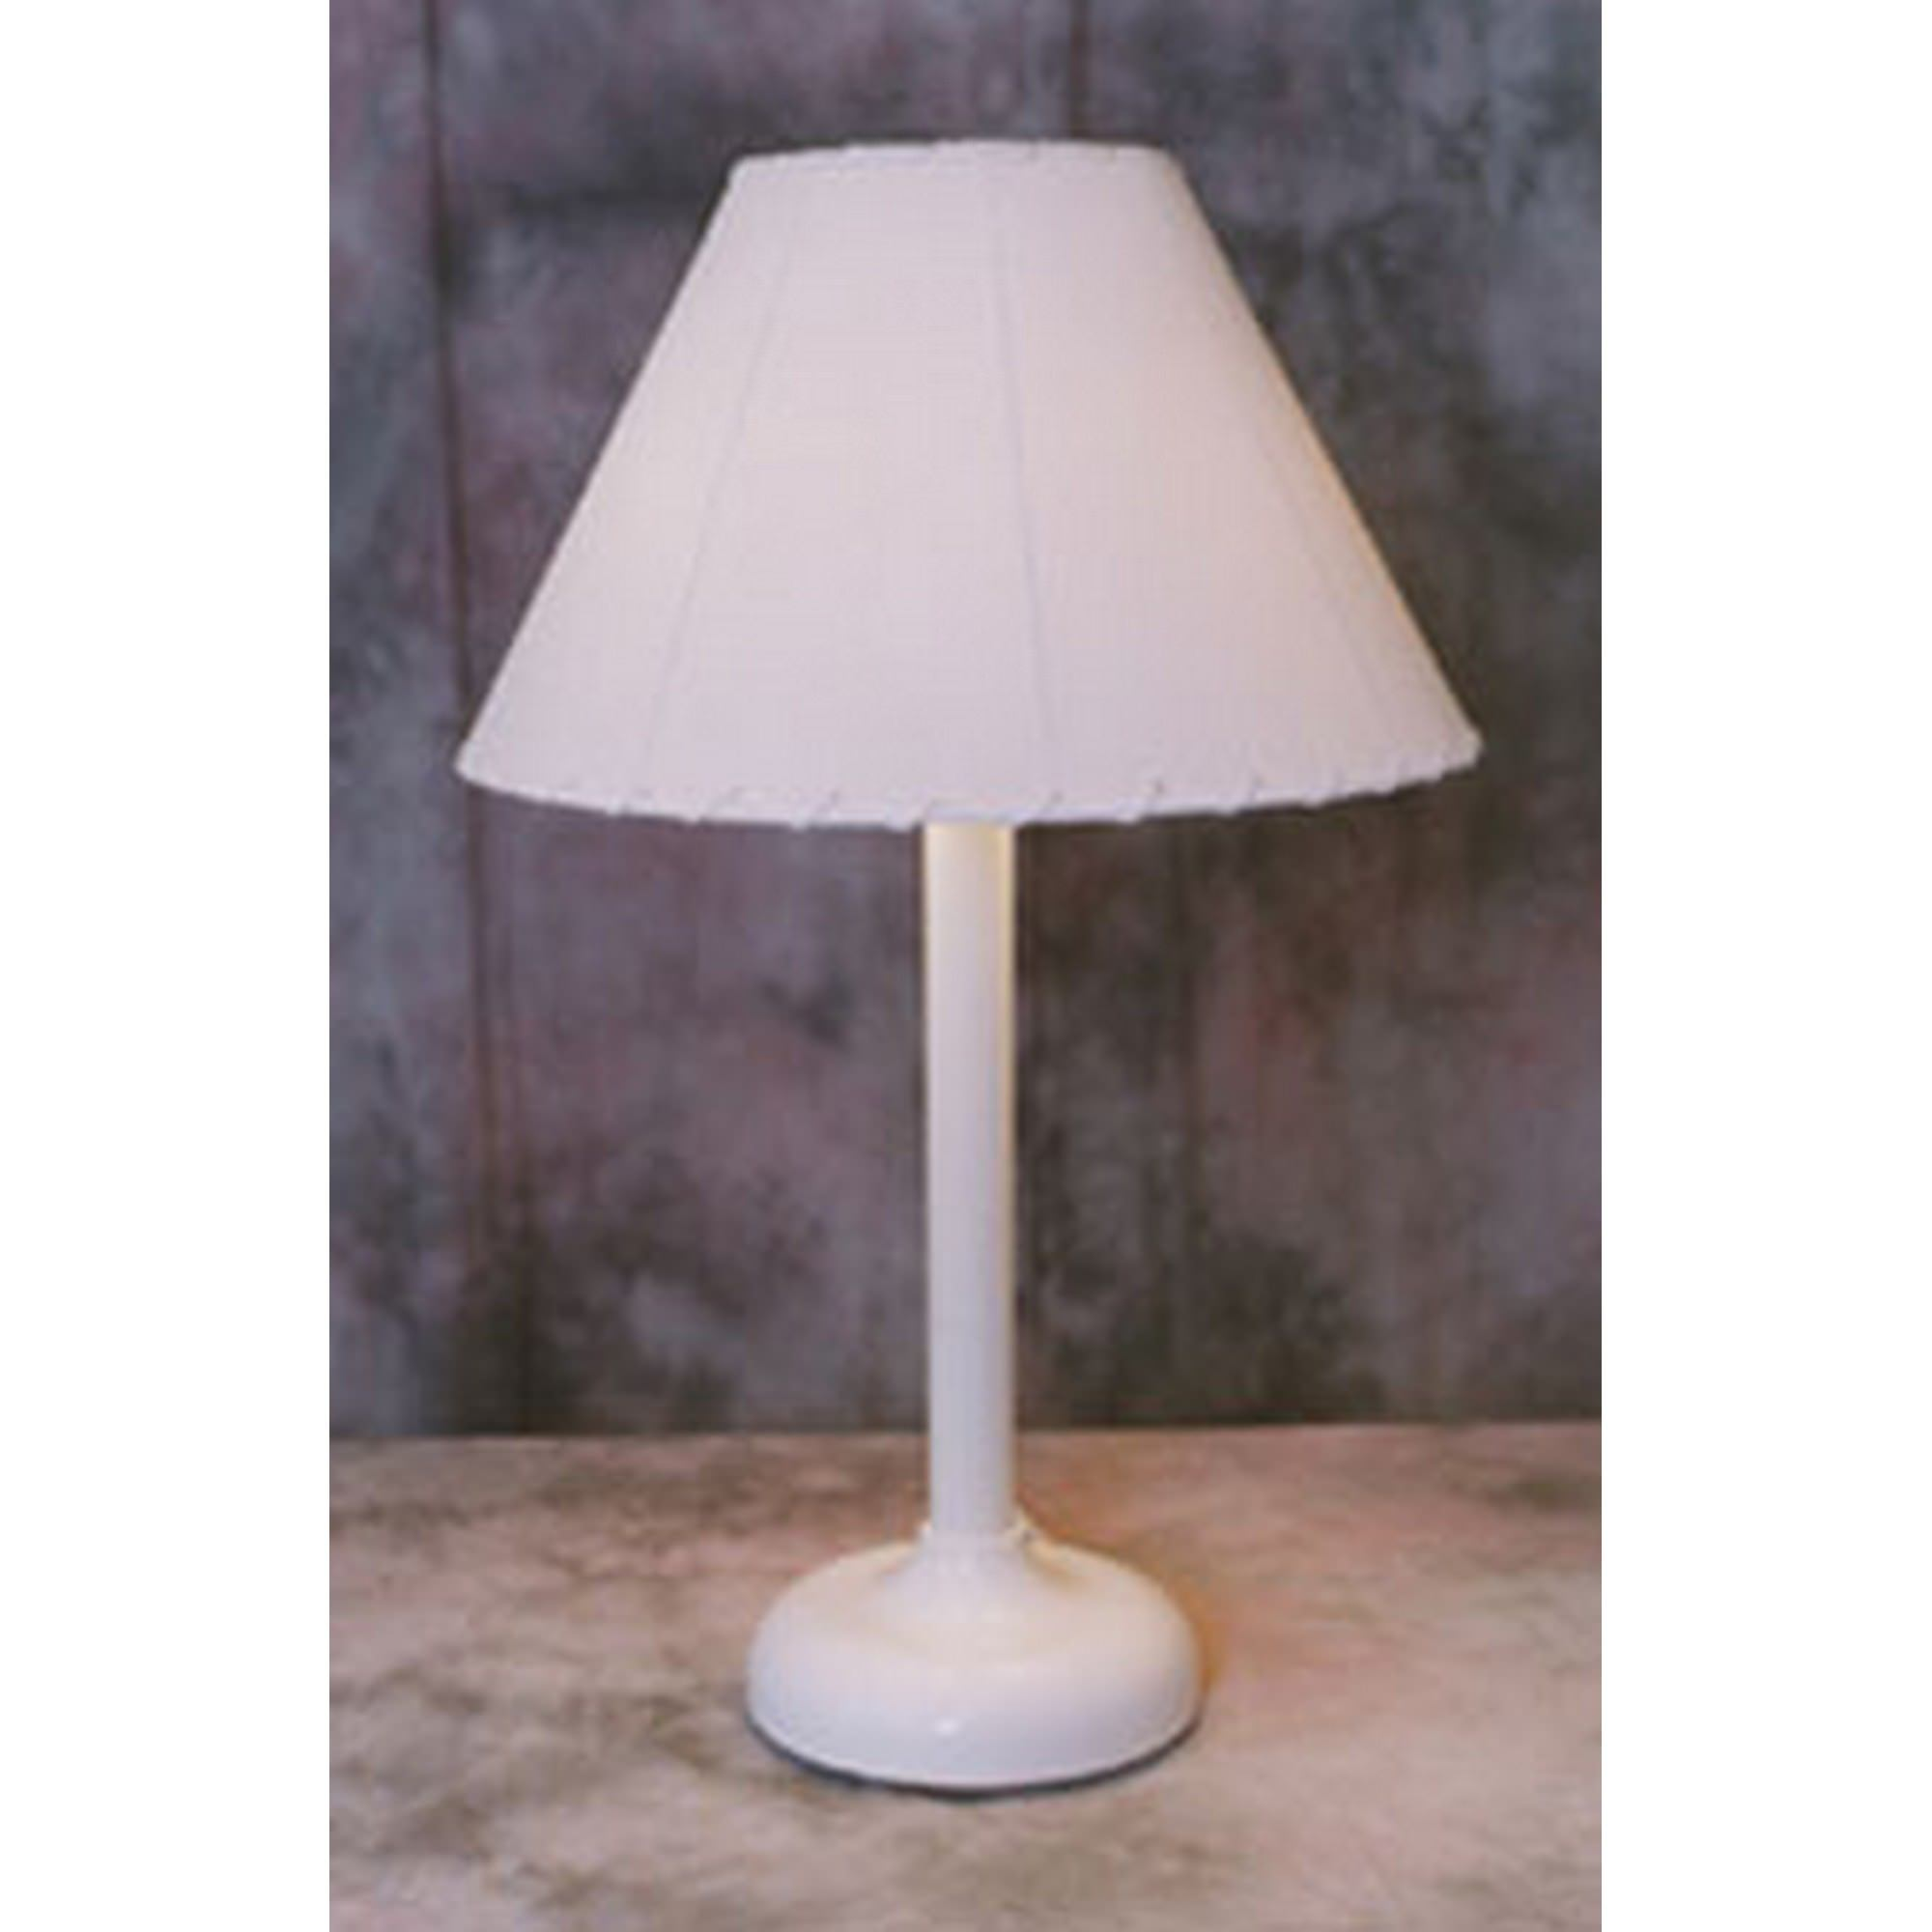 30 in tall traditional table lamp white frame by outdoor lamp company. Black Bedroom Furniture Sets. Home Design Ideas